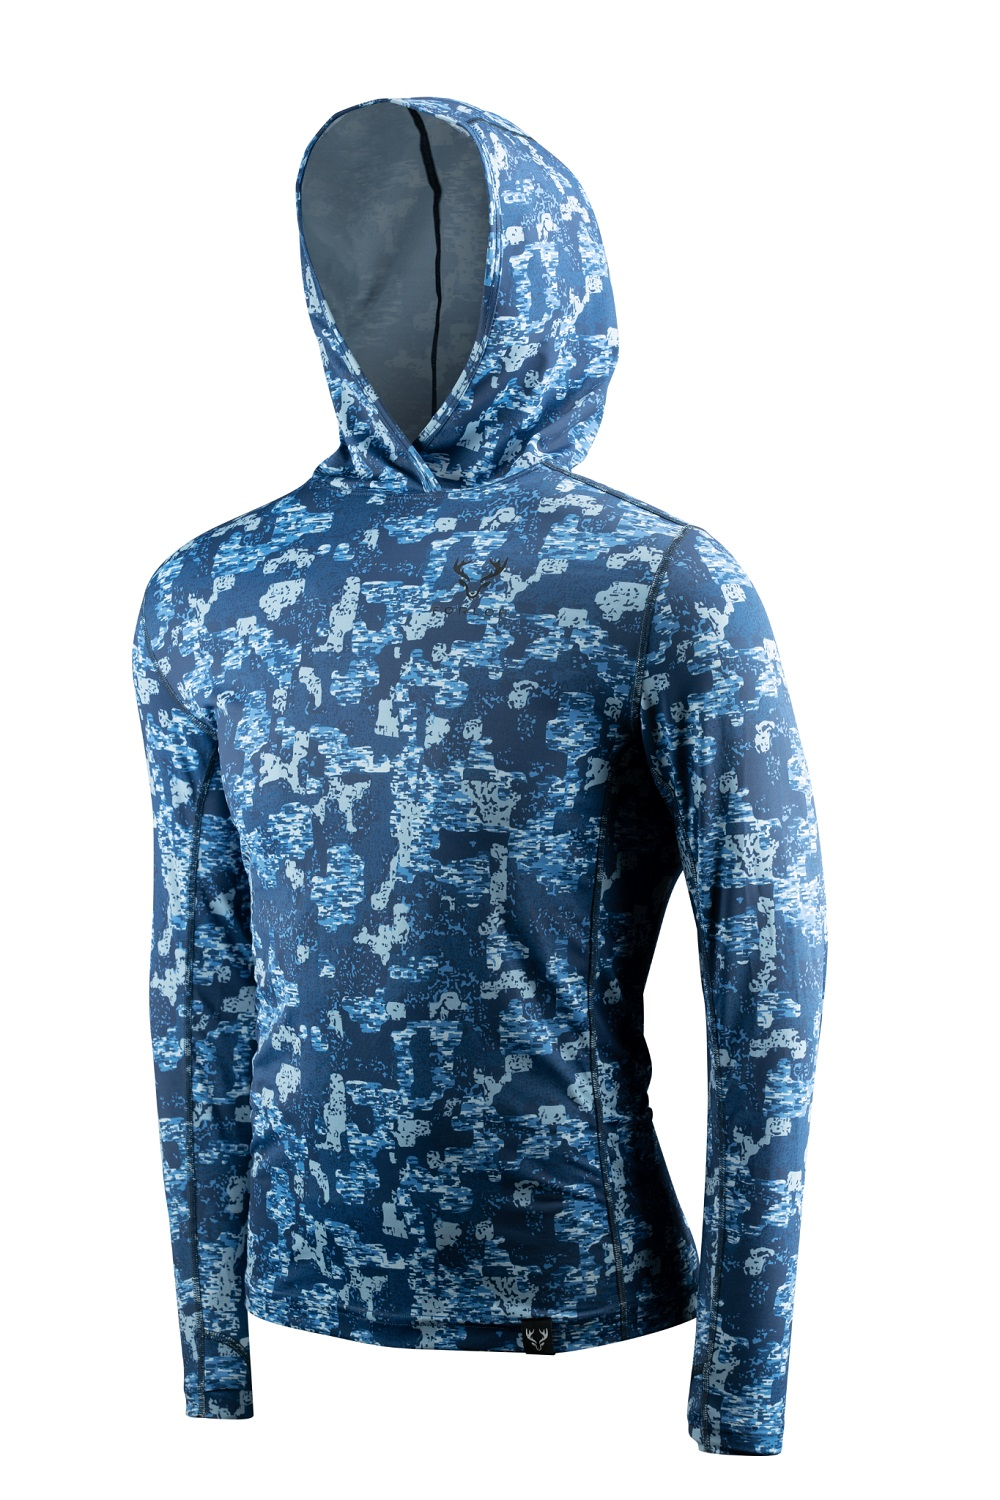 FORLOH, a 100 percent Made in USA technical outdoor brand, has introduced SolAir, a collection of apparel designed to keep wearers cool.